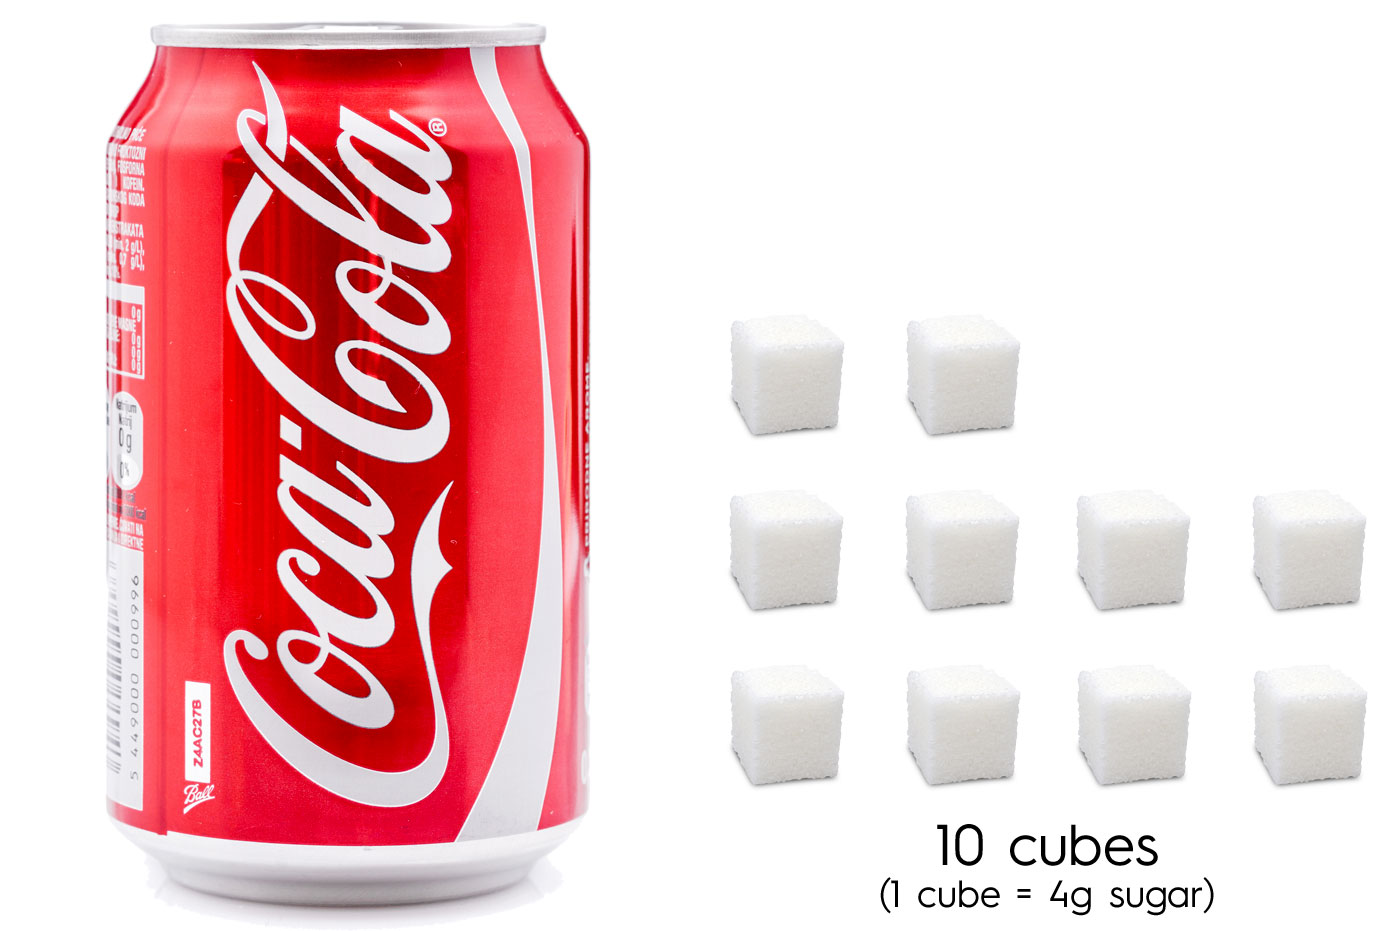 Coca-Cola: 39.8g sugar per 375ml can